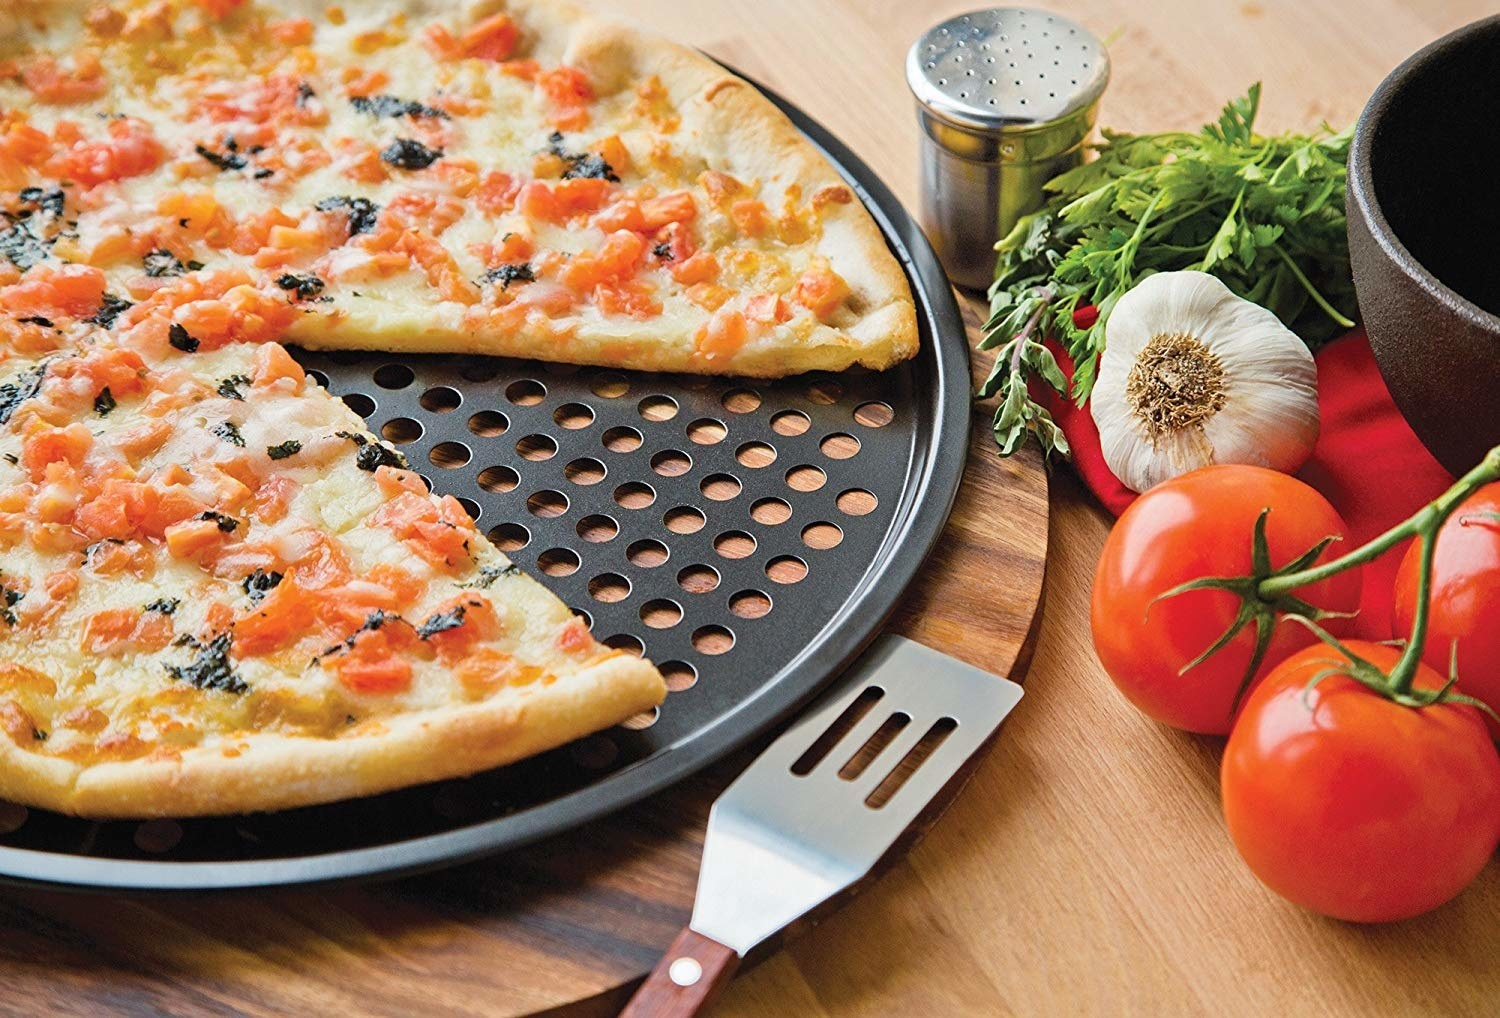 A thin-crust pizza on the pan